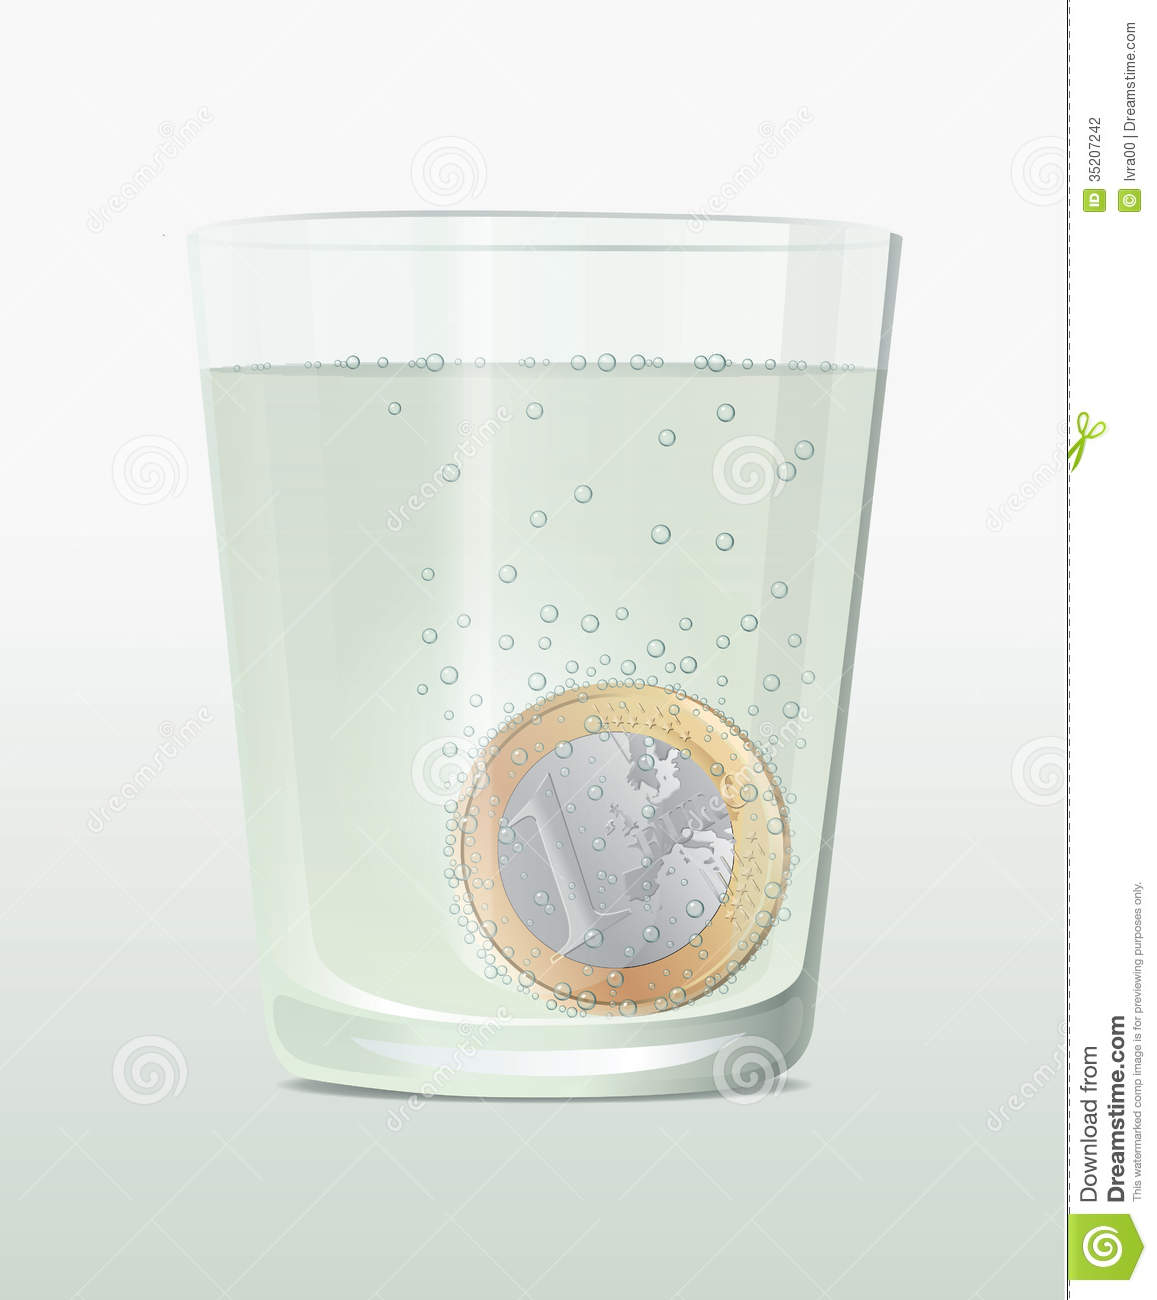 Fizzy Euro Coin Stock Photography - Image: 35207242